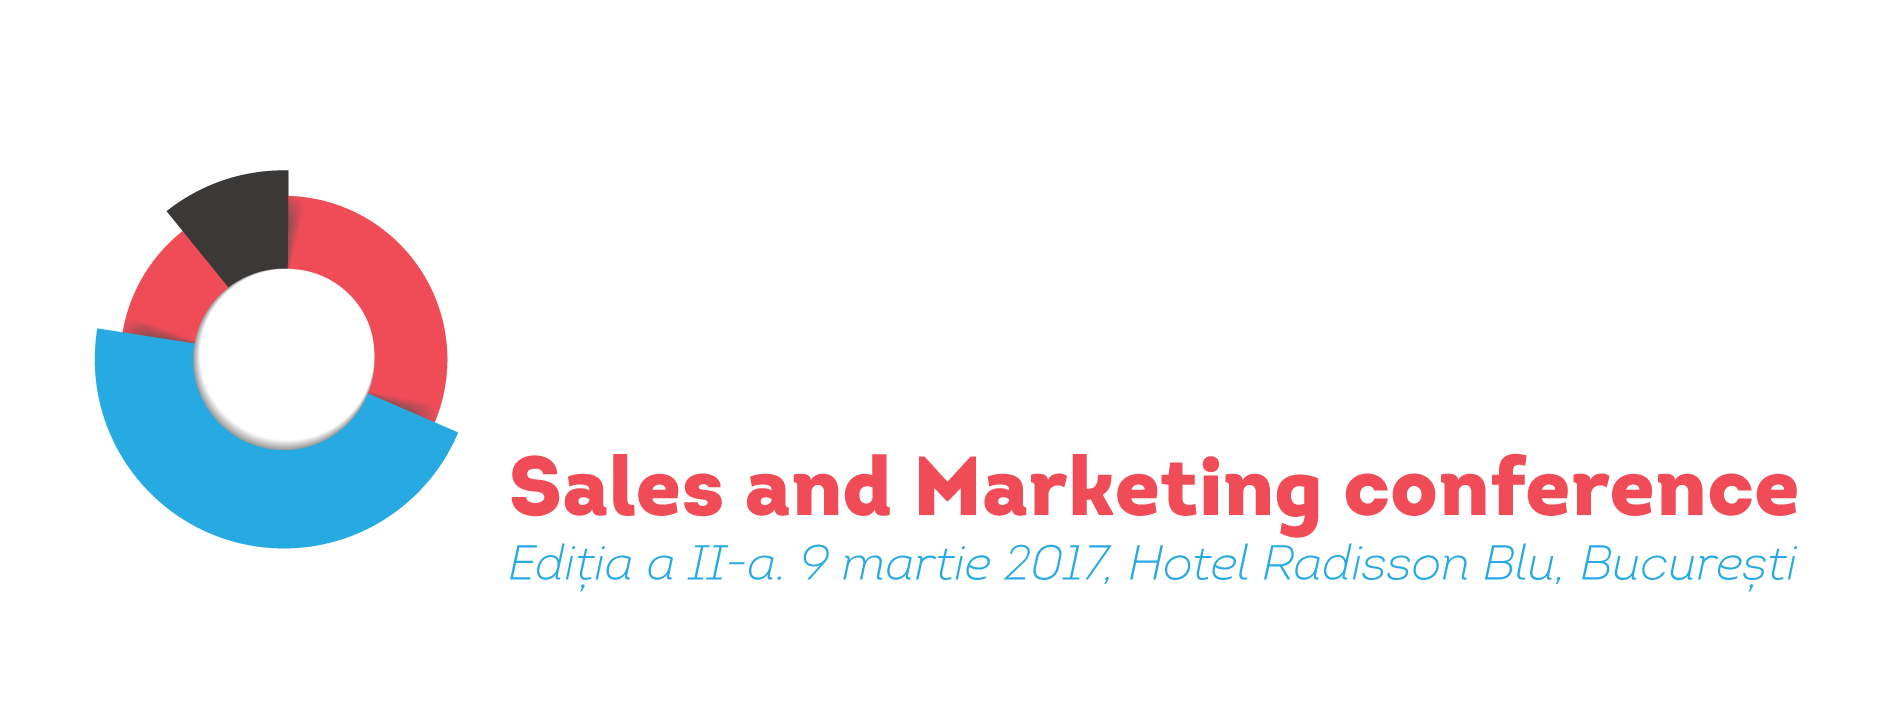 Sales & Marketing Conference, ediția a II-a